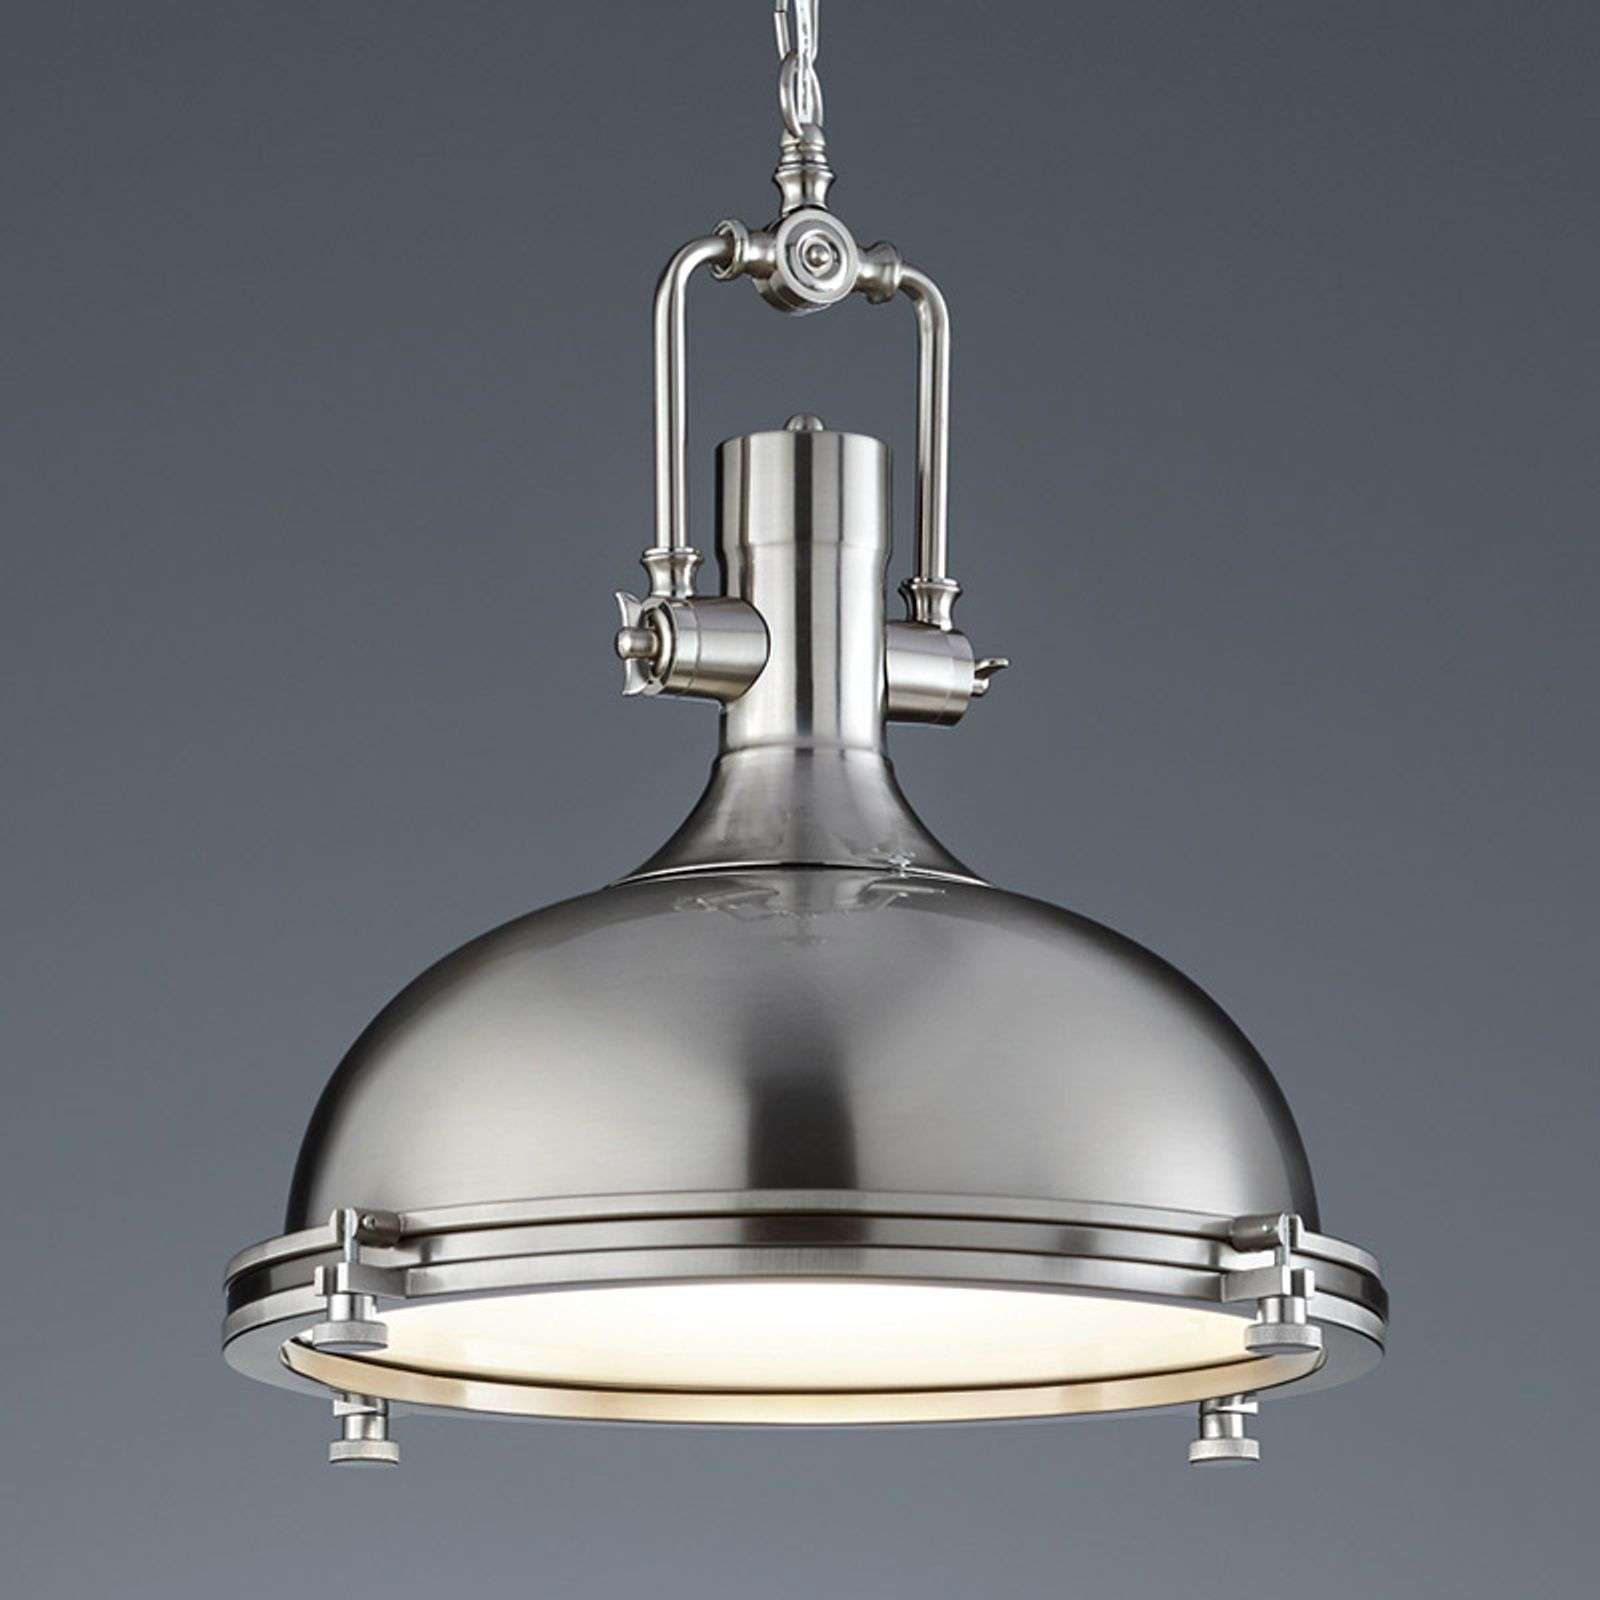 Suspension Boston aspect nickel mat